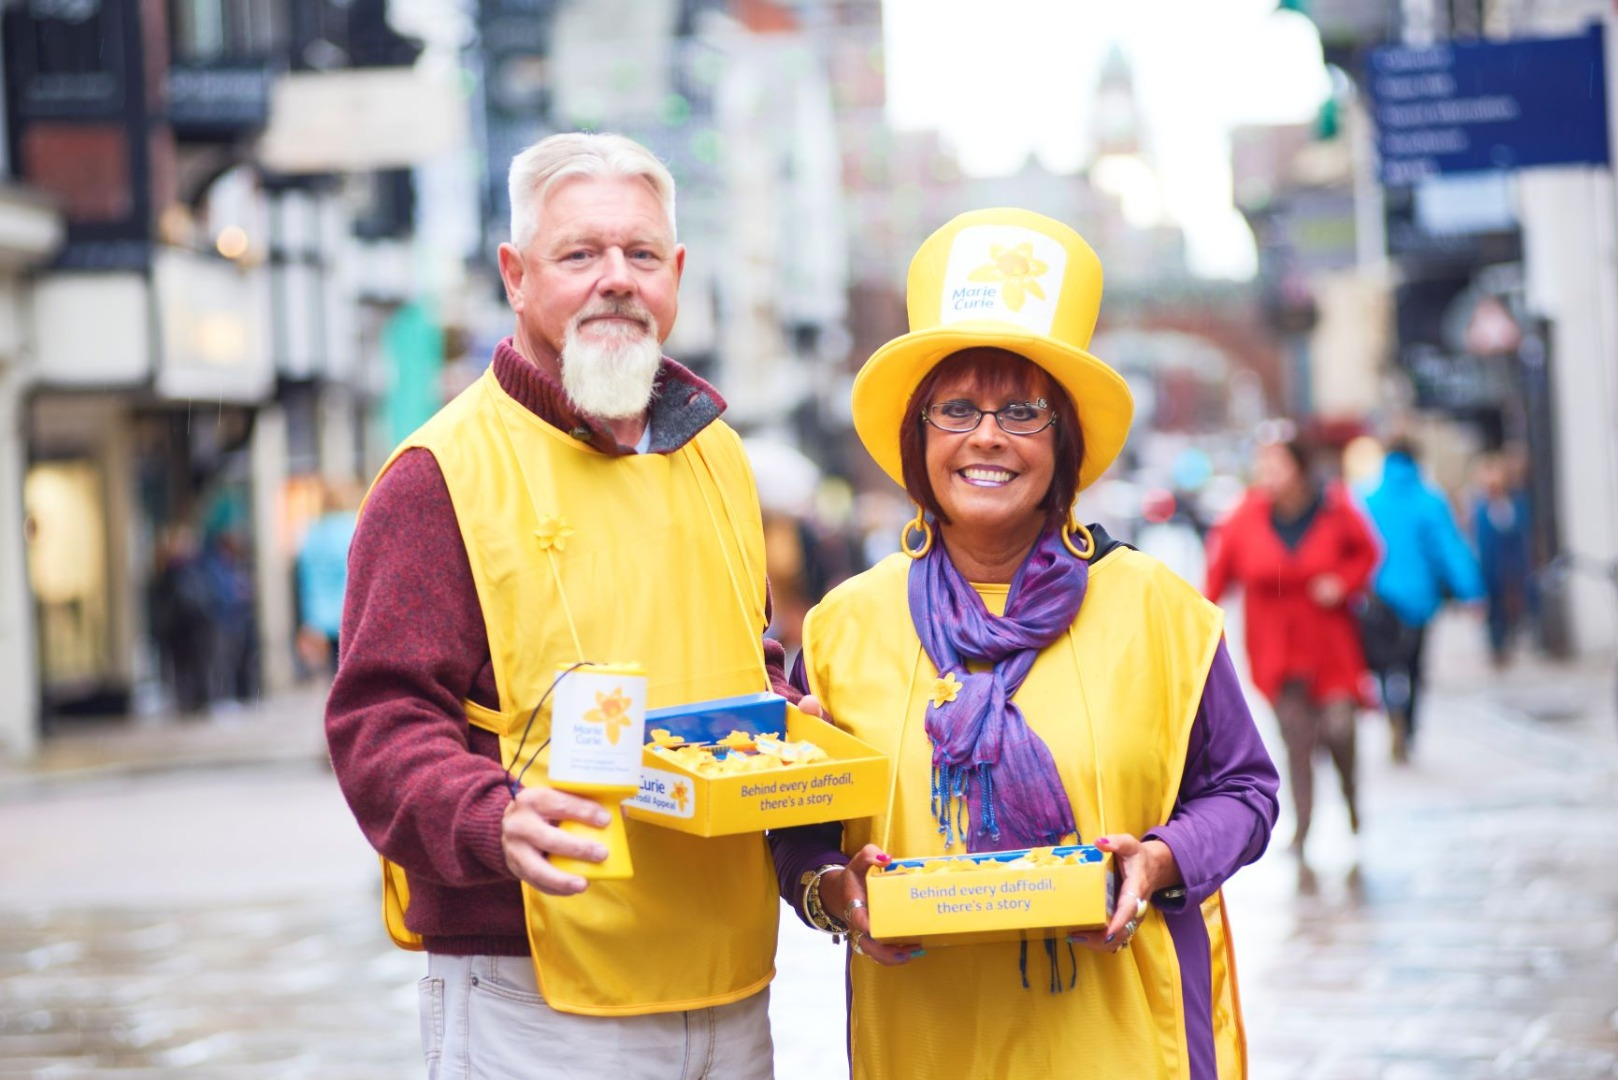 Volunteers needed now for Marie Curie Great Daffodil Appeal in Cheshire